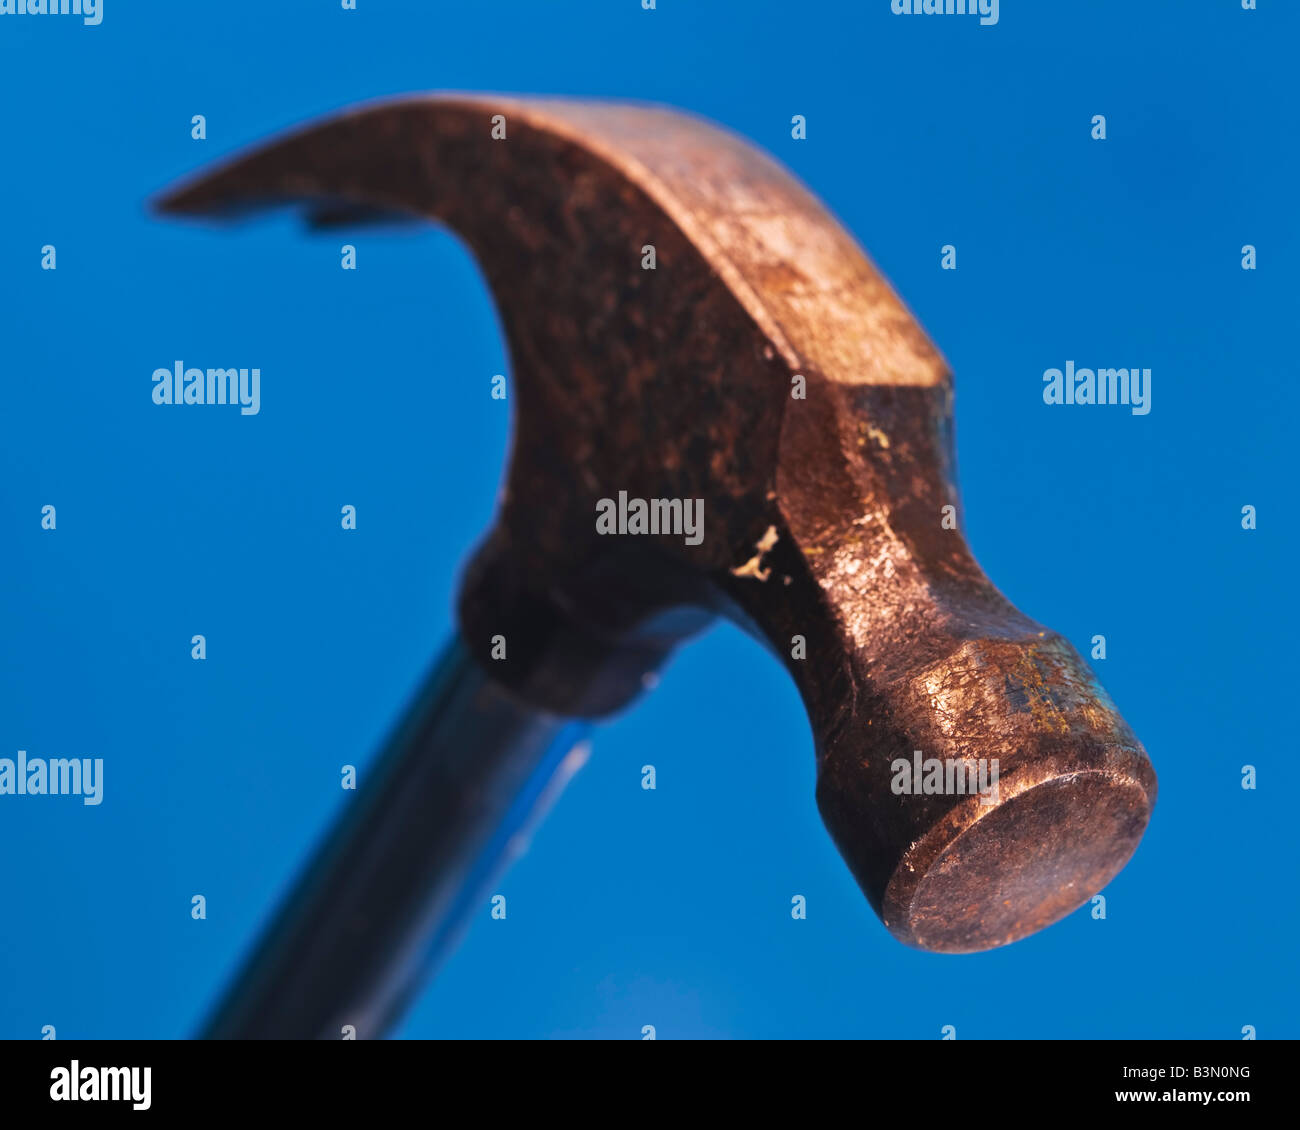 Image of the head of a well used claw hammer against a blue background poised to drop - Stock Image